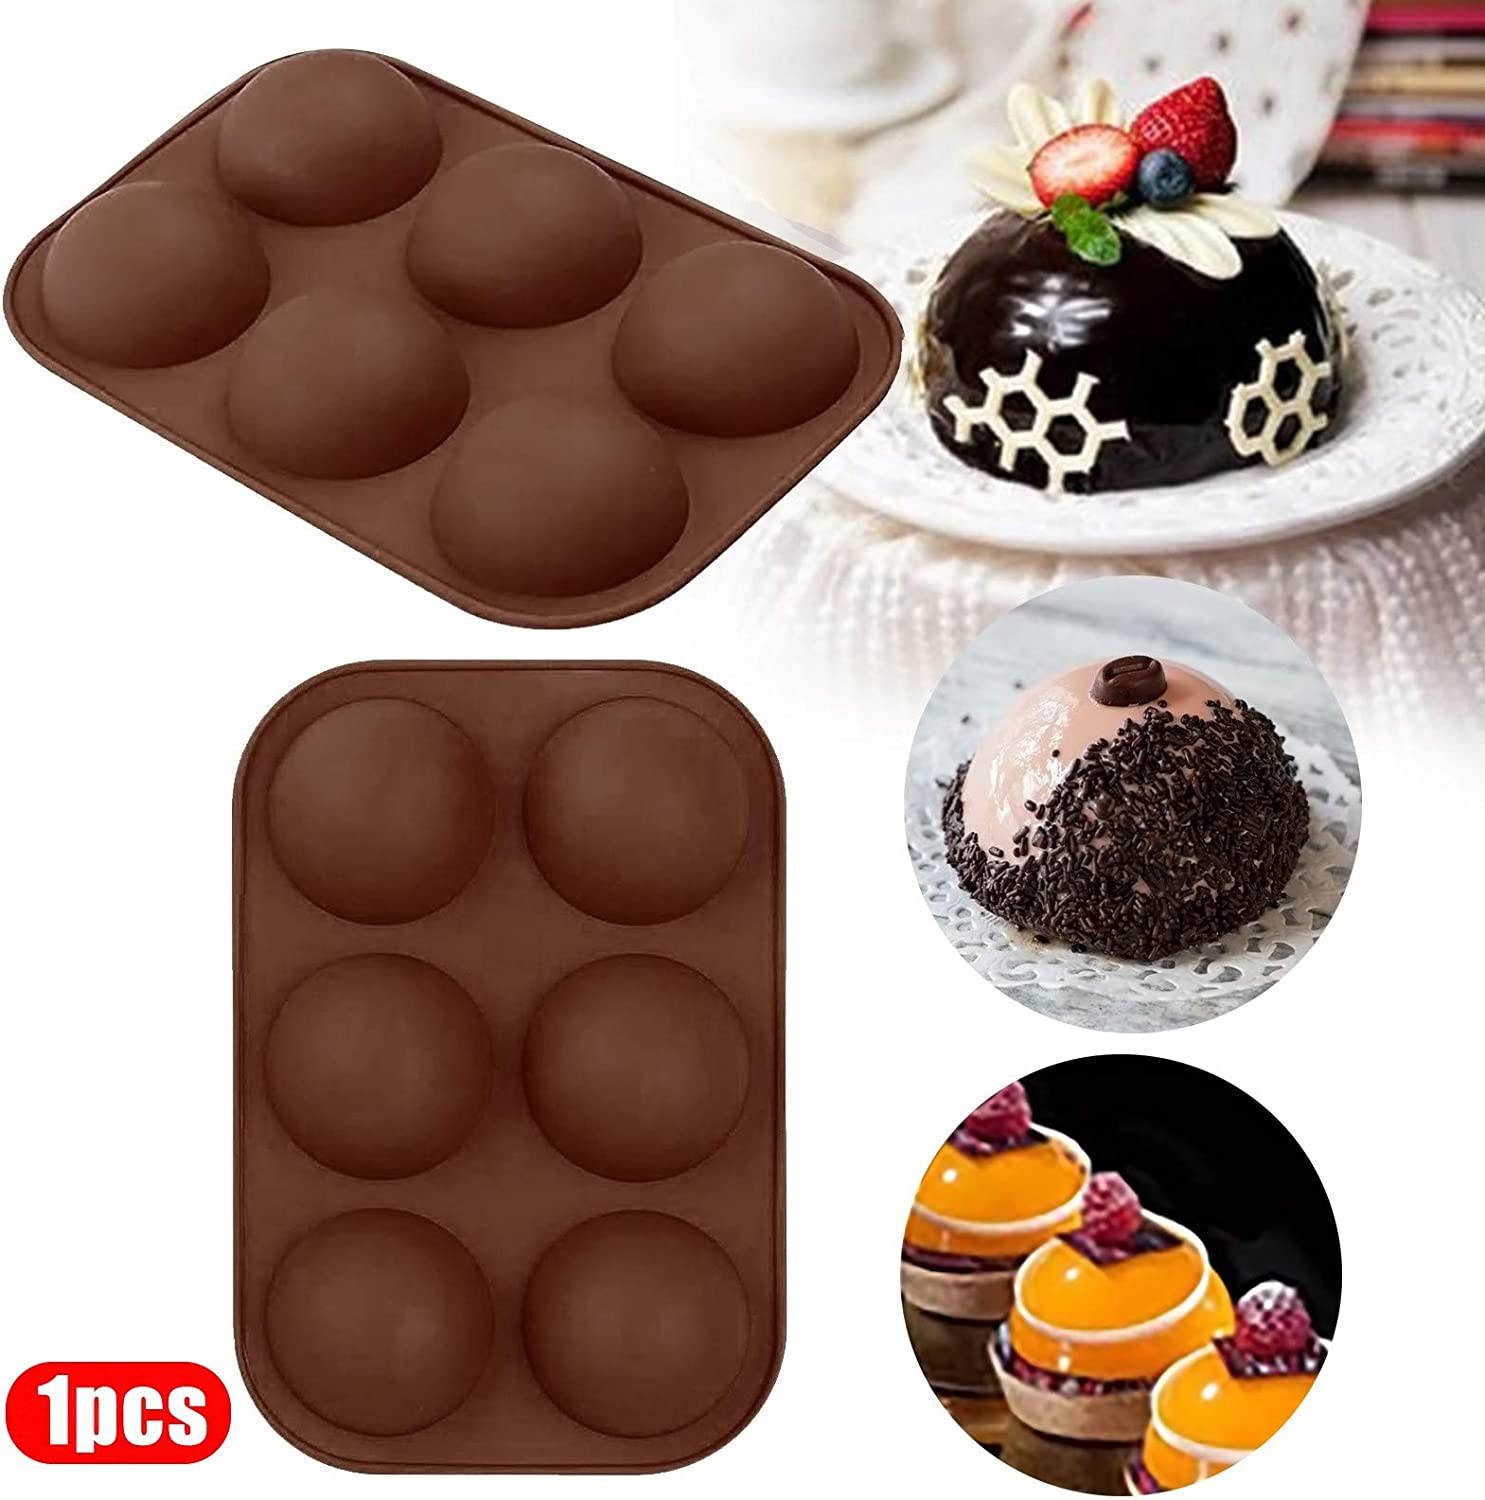 Jelly Cake Black,1PC nikunLONG 1PC Half Ball Sphere Silicone Mold Festival Party DIY Nonstick Cake Mold Silicone Cake Mold Muffin Cookie Baking Mould Pan for Chocolate Pudding